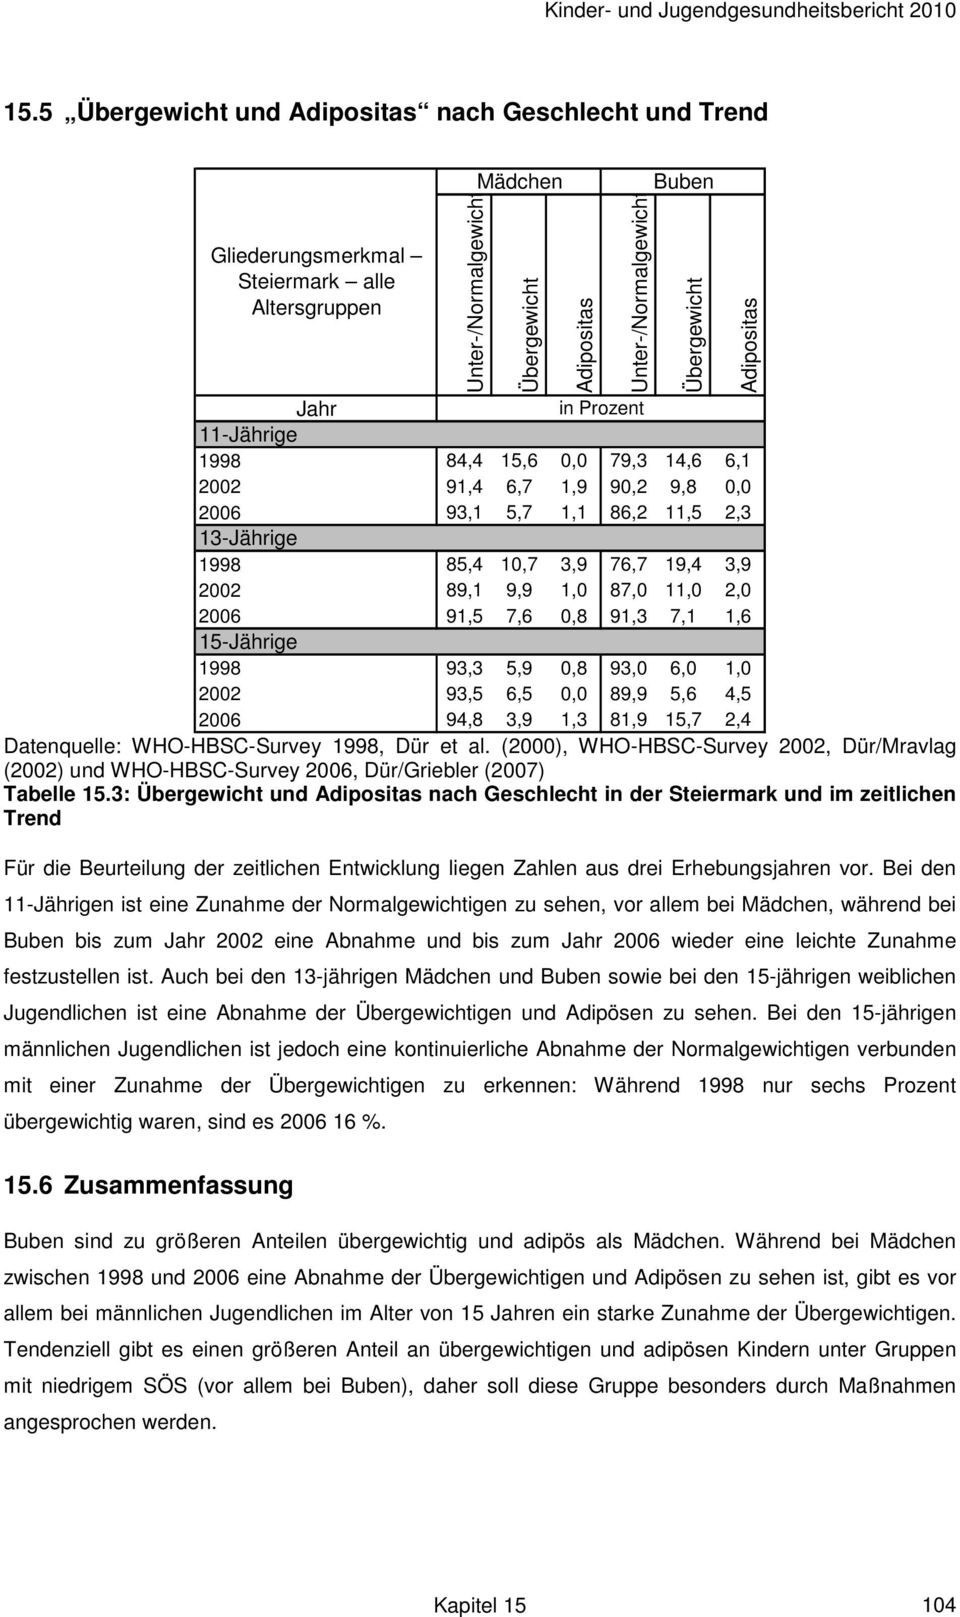 2006 94,8 3,9 1,3 81,9 15,7 2,4 Datenquelle: WHO-HBSC-Survey 1998, Dür et al. (2000), WHO-HBSC-Survey 2002, Dür/Mravlag (2002) und WHO-HBSC-Survey 2006, Dür/Griebler (2007) Tabelle 15.